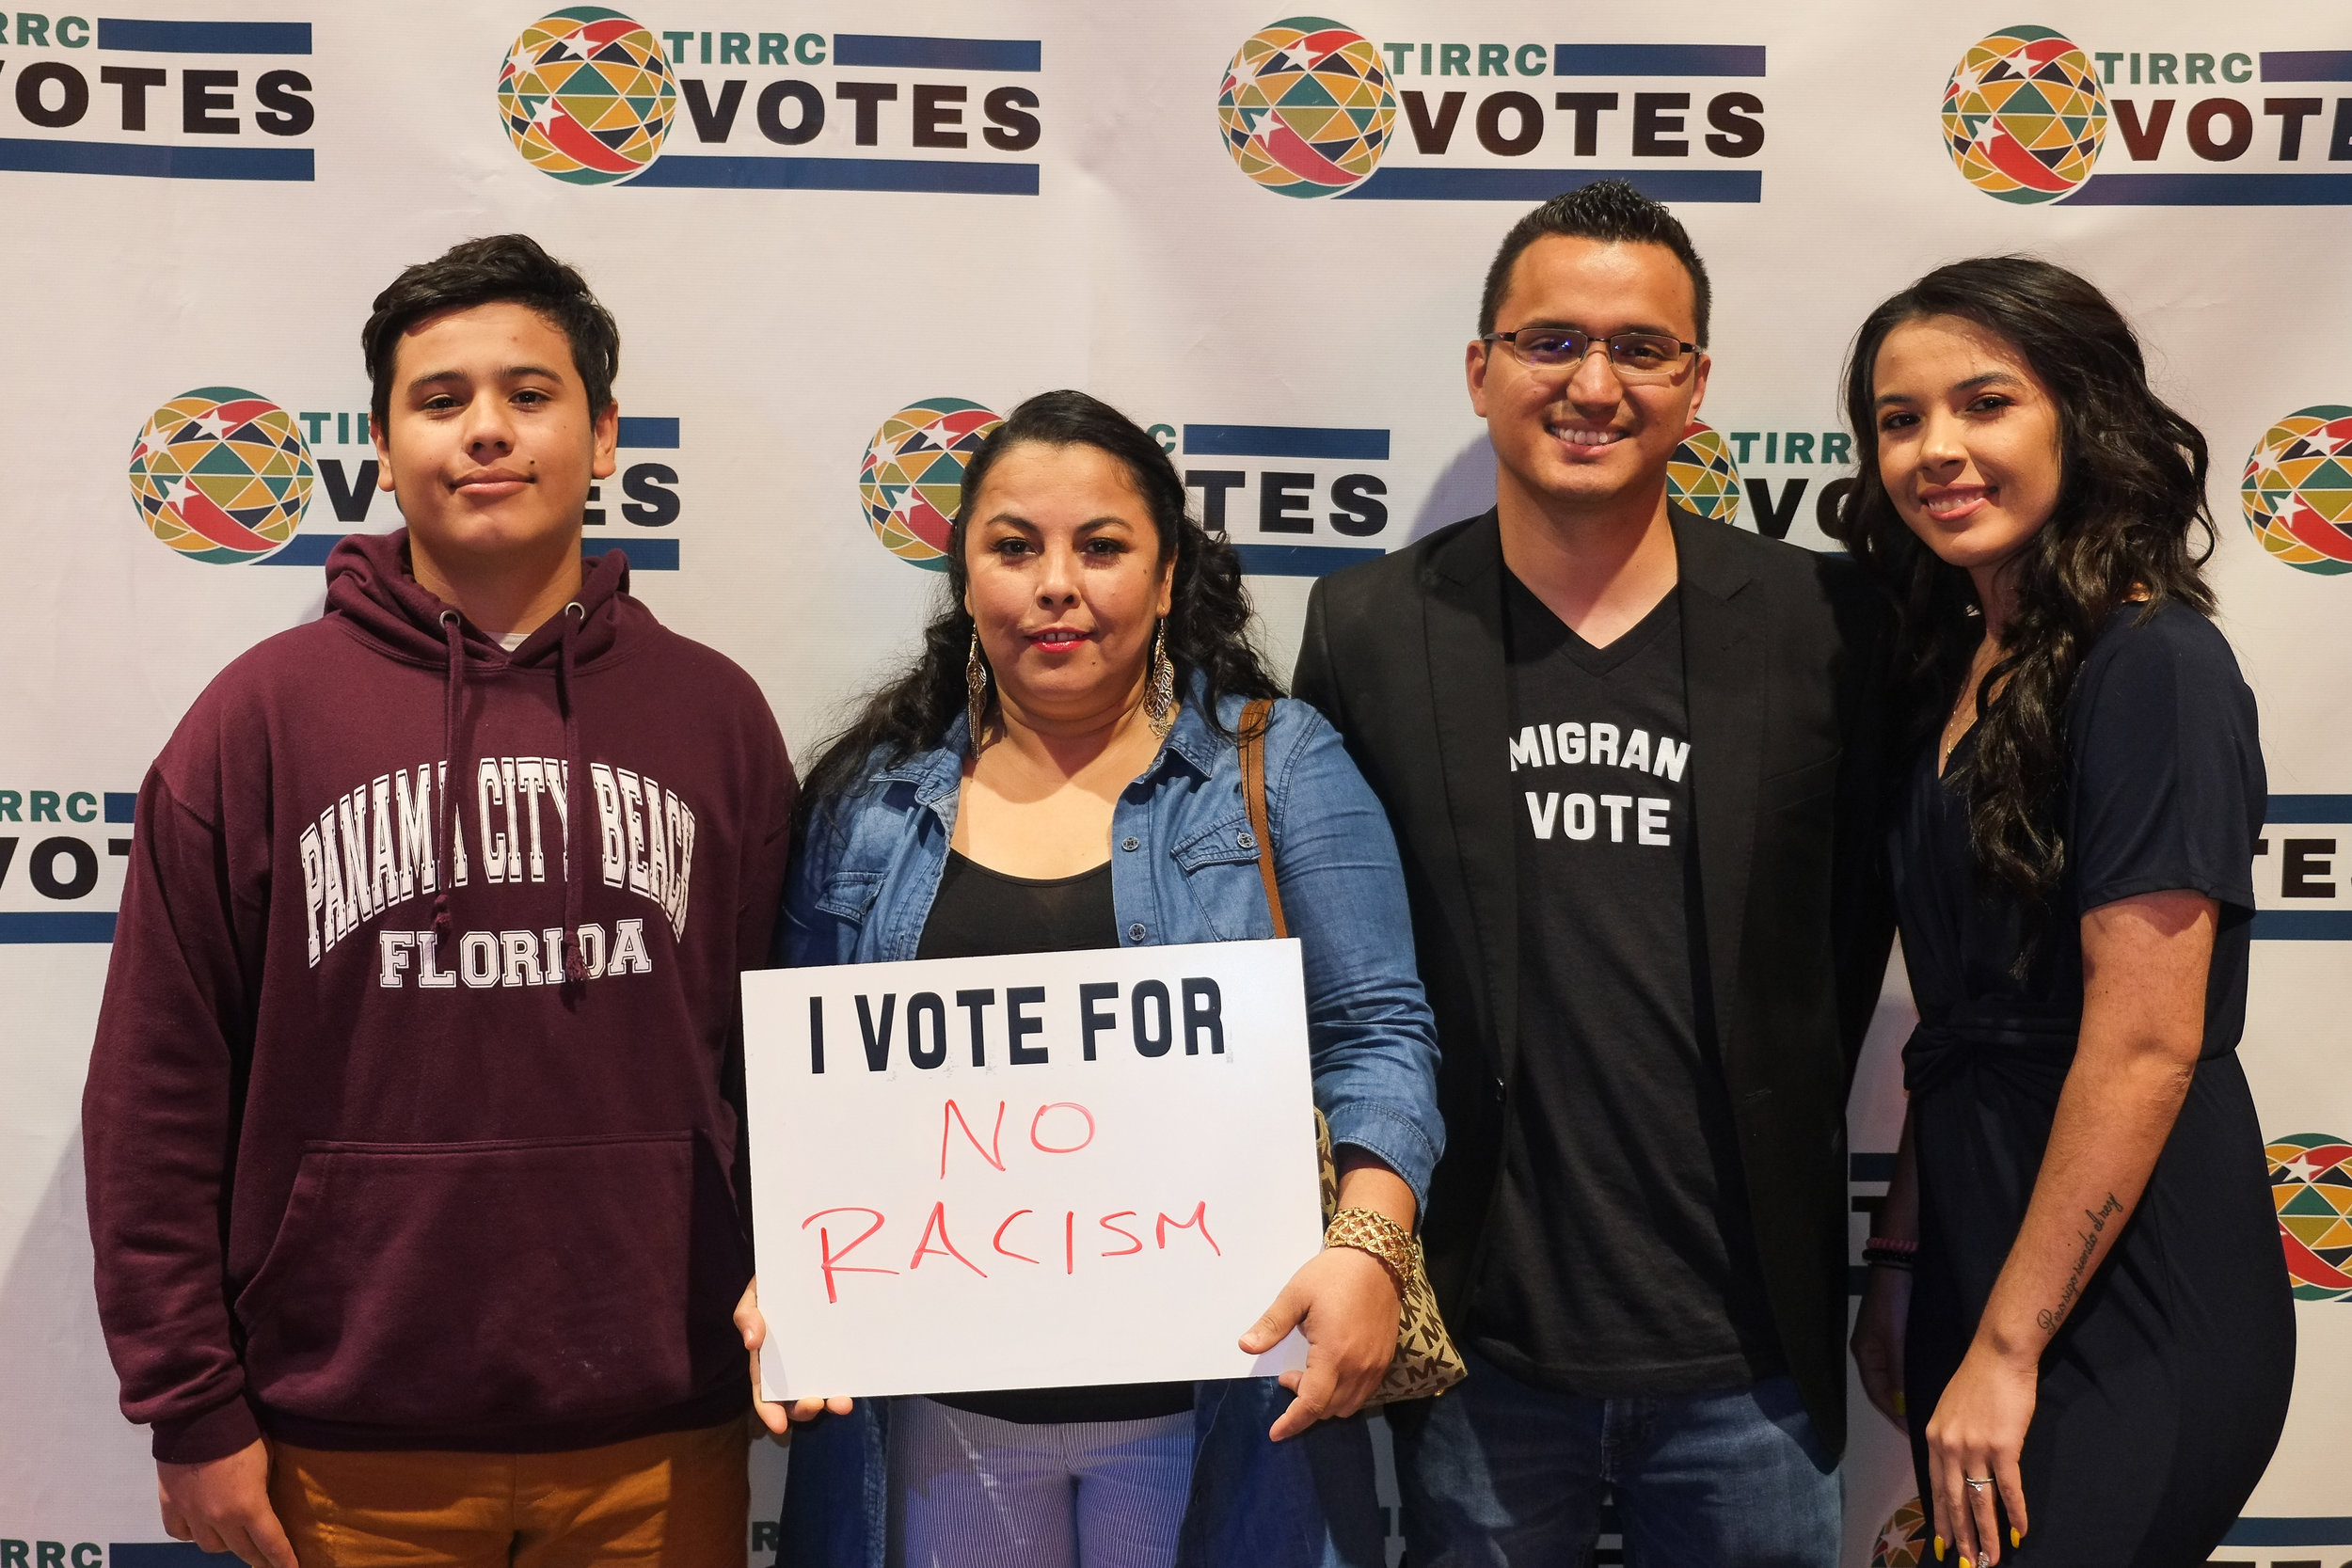 TIRRCVotes-PhotoBooth-50.jpg